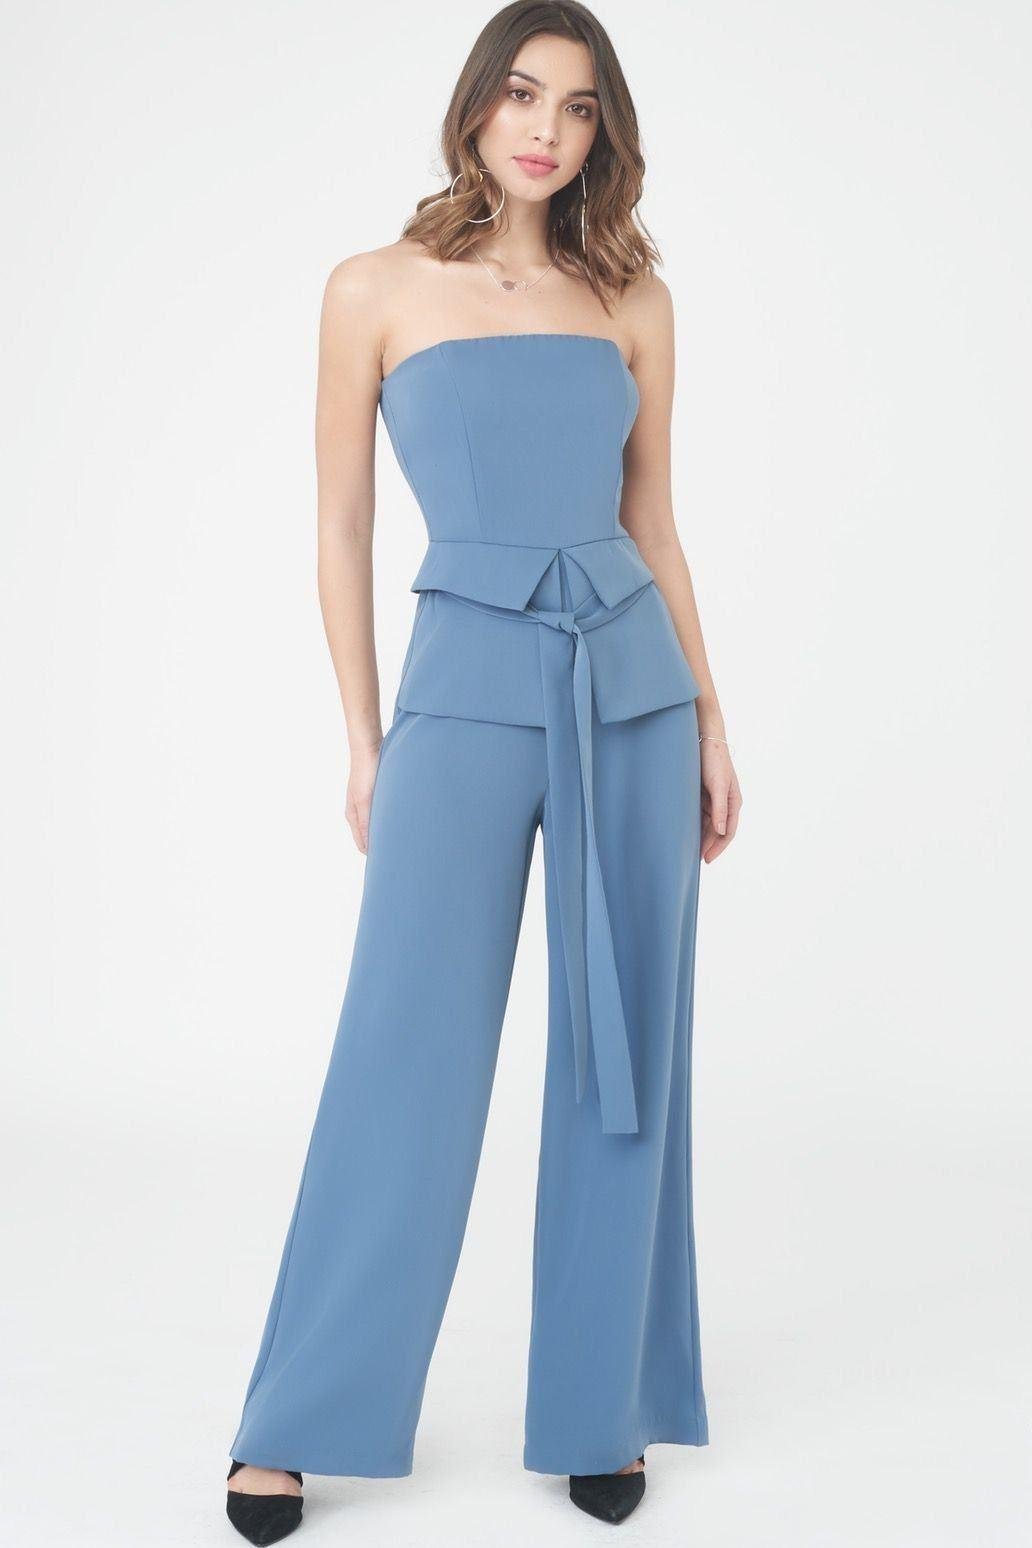 177e7e965805 Lyst - Lavish Alice Strapless Jumpsuit With Corset Belt in Blue ...